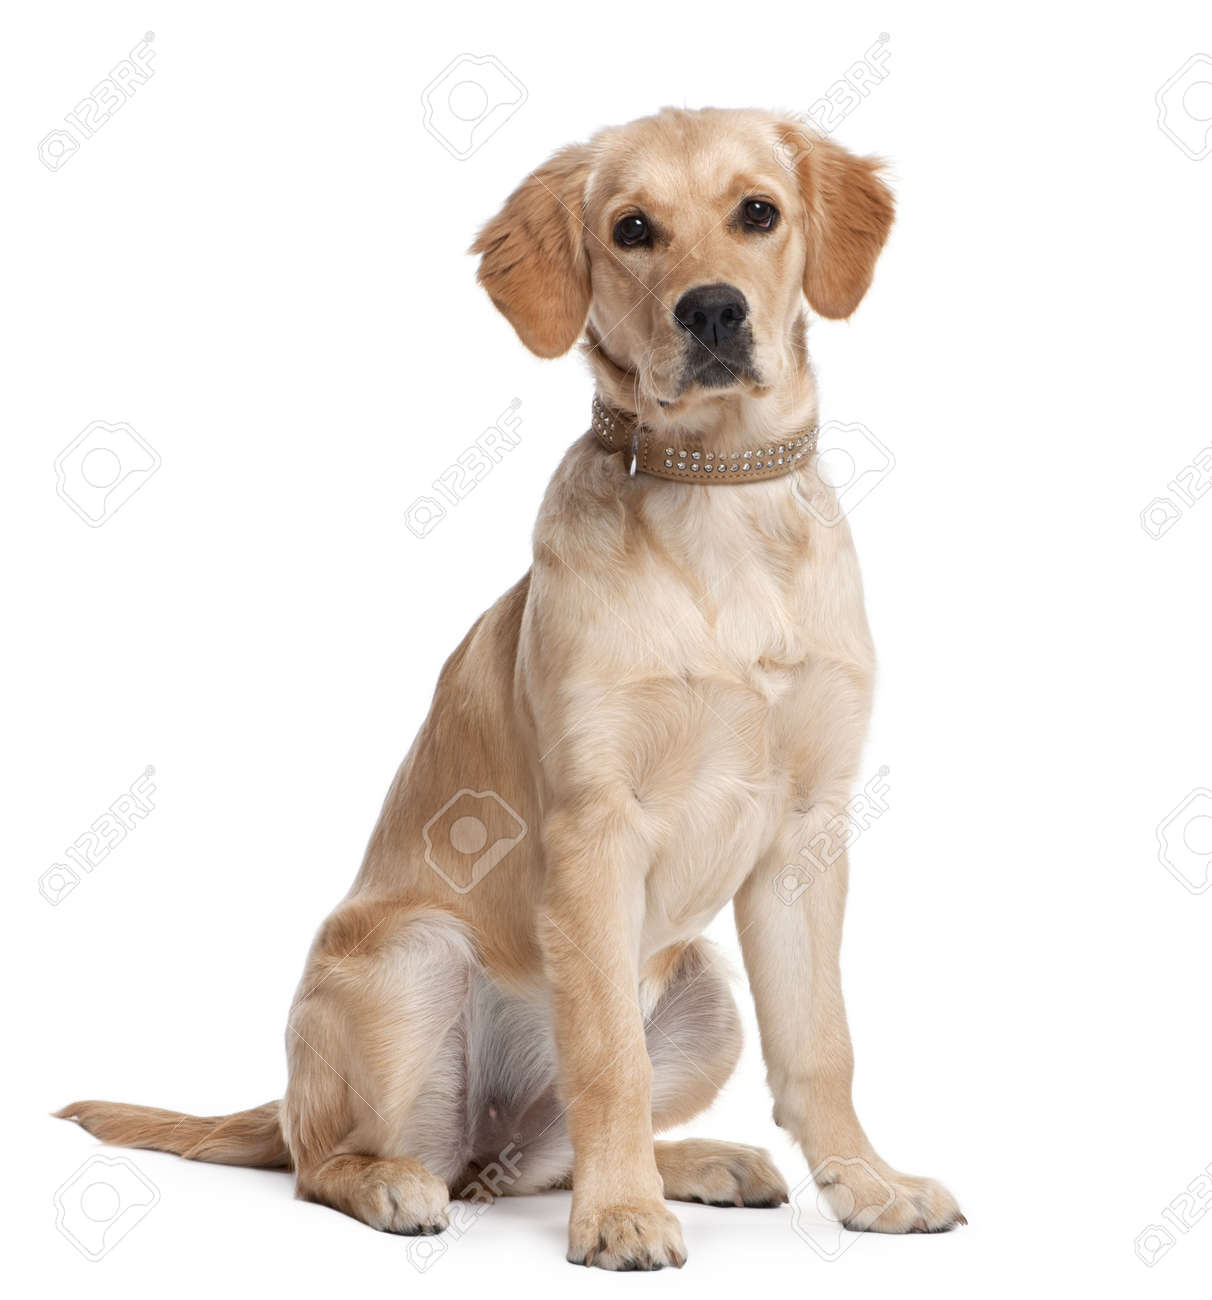 Golden Retriever Puppy 5 Months Old In Front Of A White Background